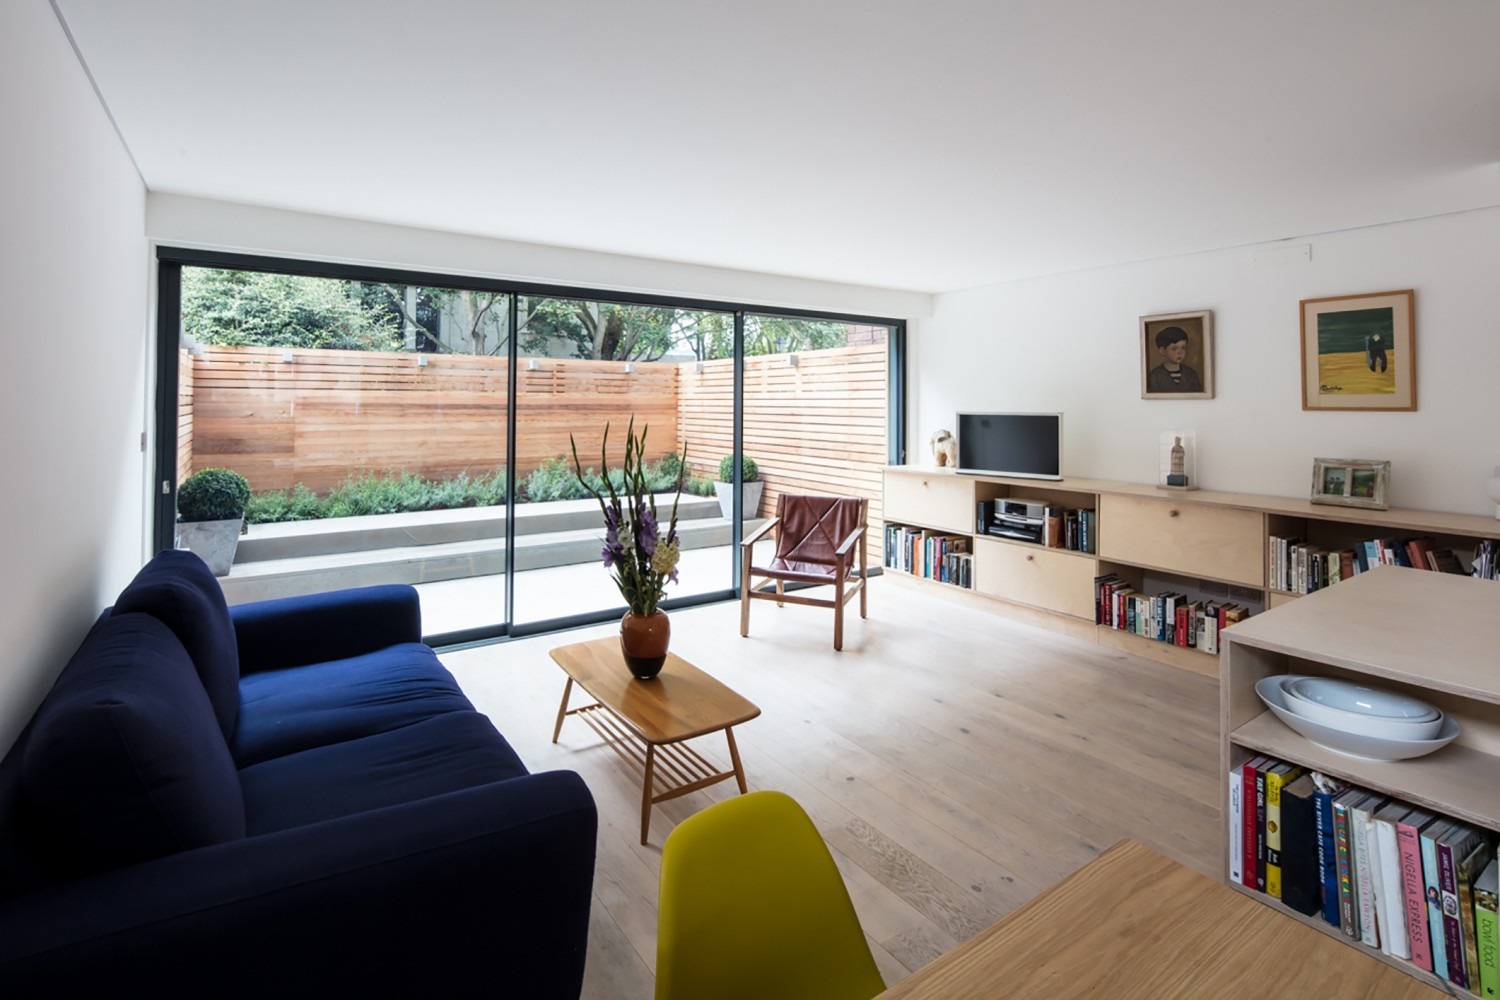 St Lukes House - Peter Morris Architects - sliding glass doors garden dog plywood